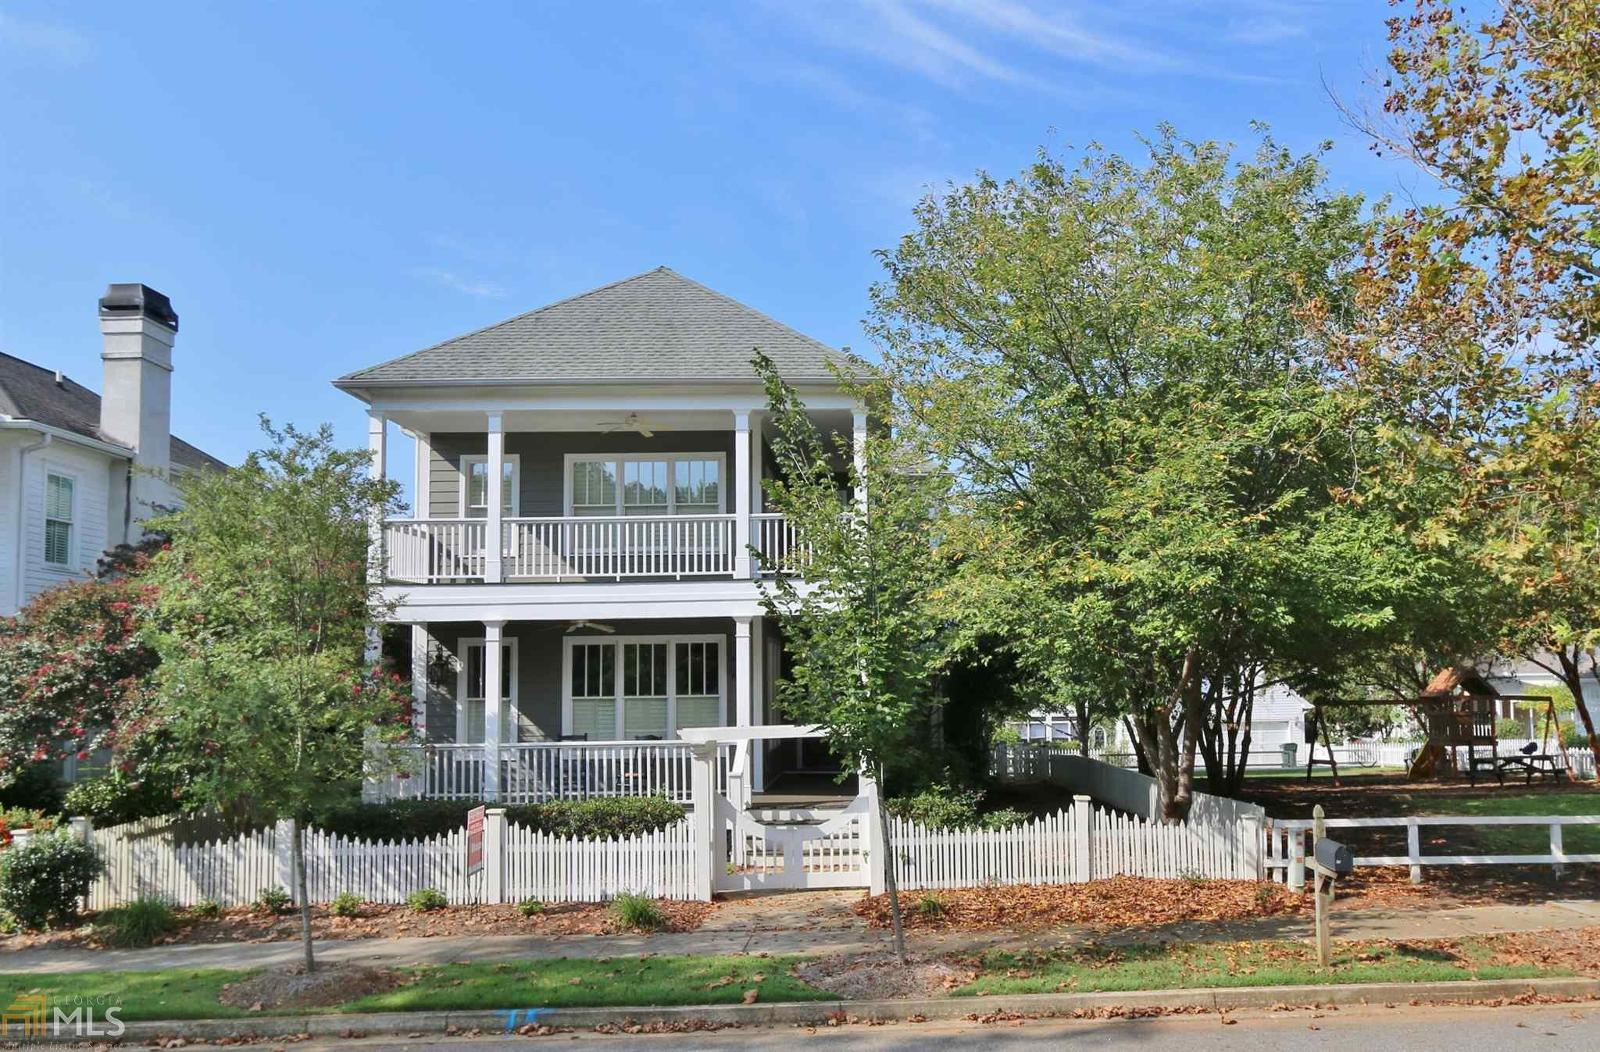 561 Sycamore St Madison Ga Mls 8226369 Better Homes And Gardens Real Estate